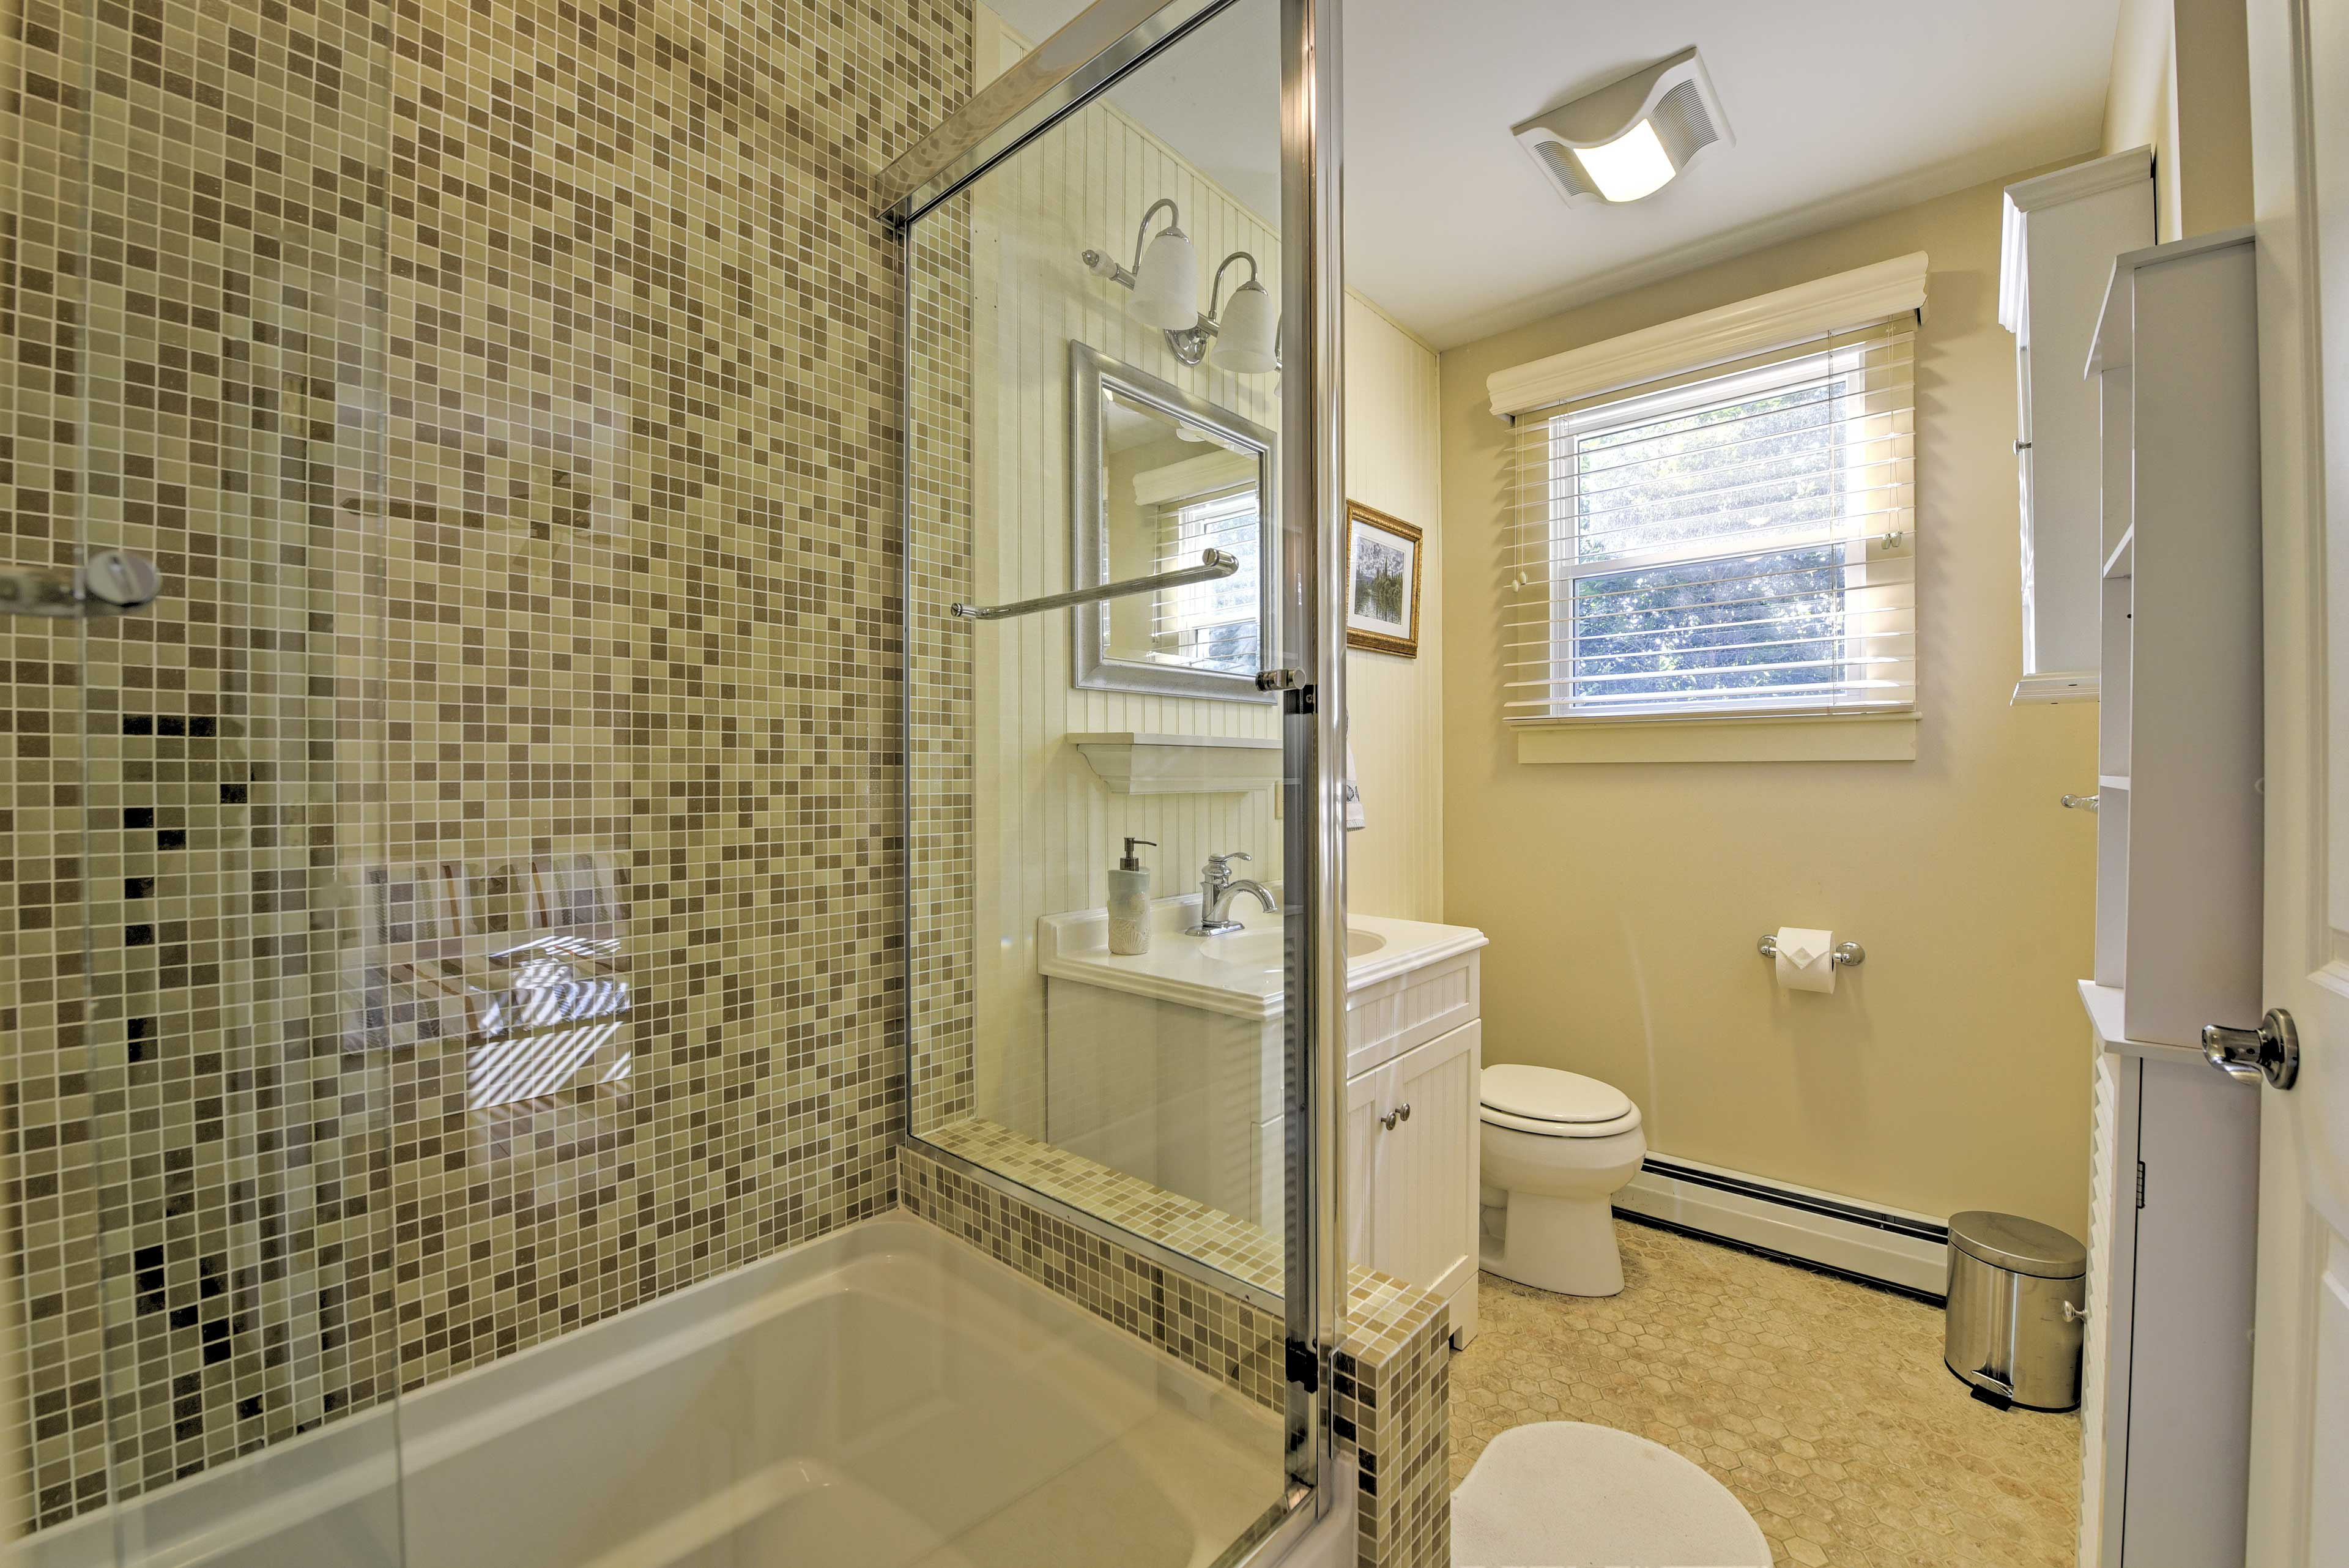 The full bathroom is equipped with a tiled tub-shower combo.